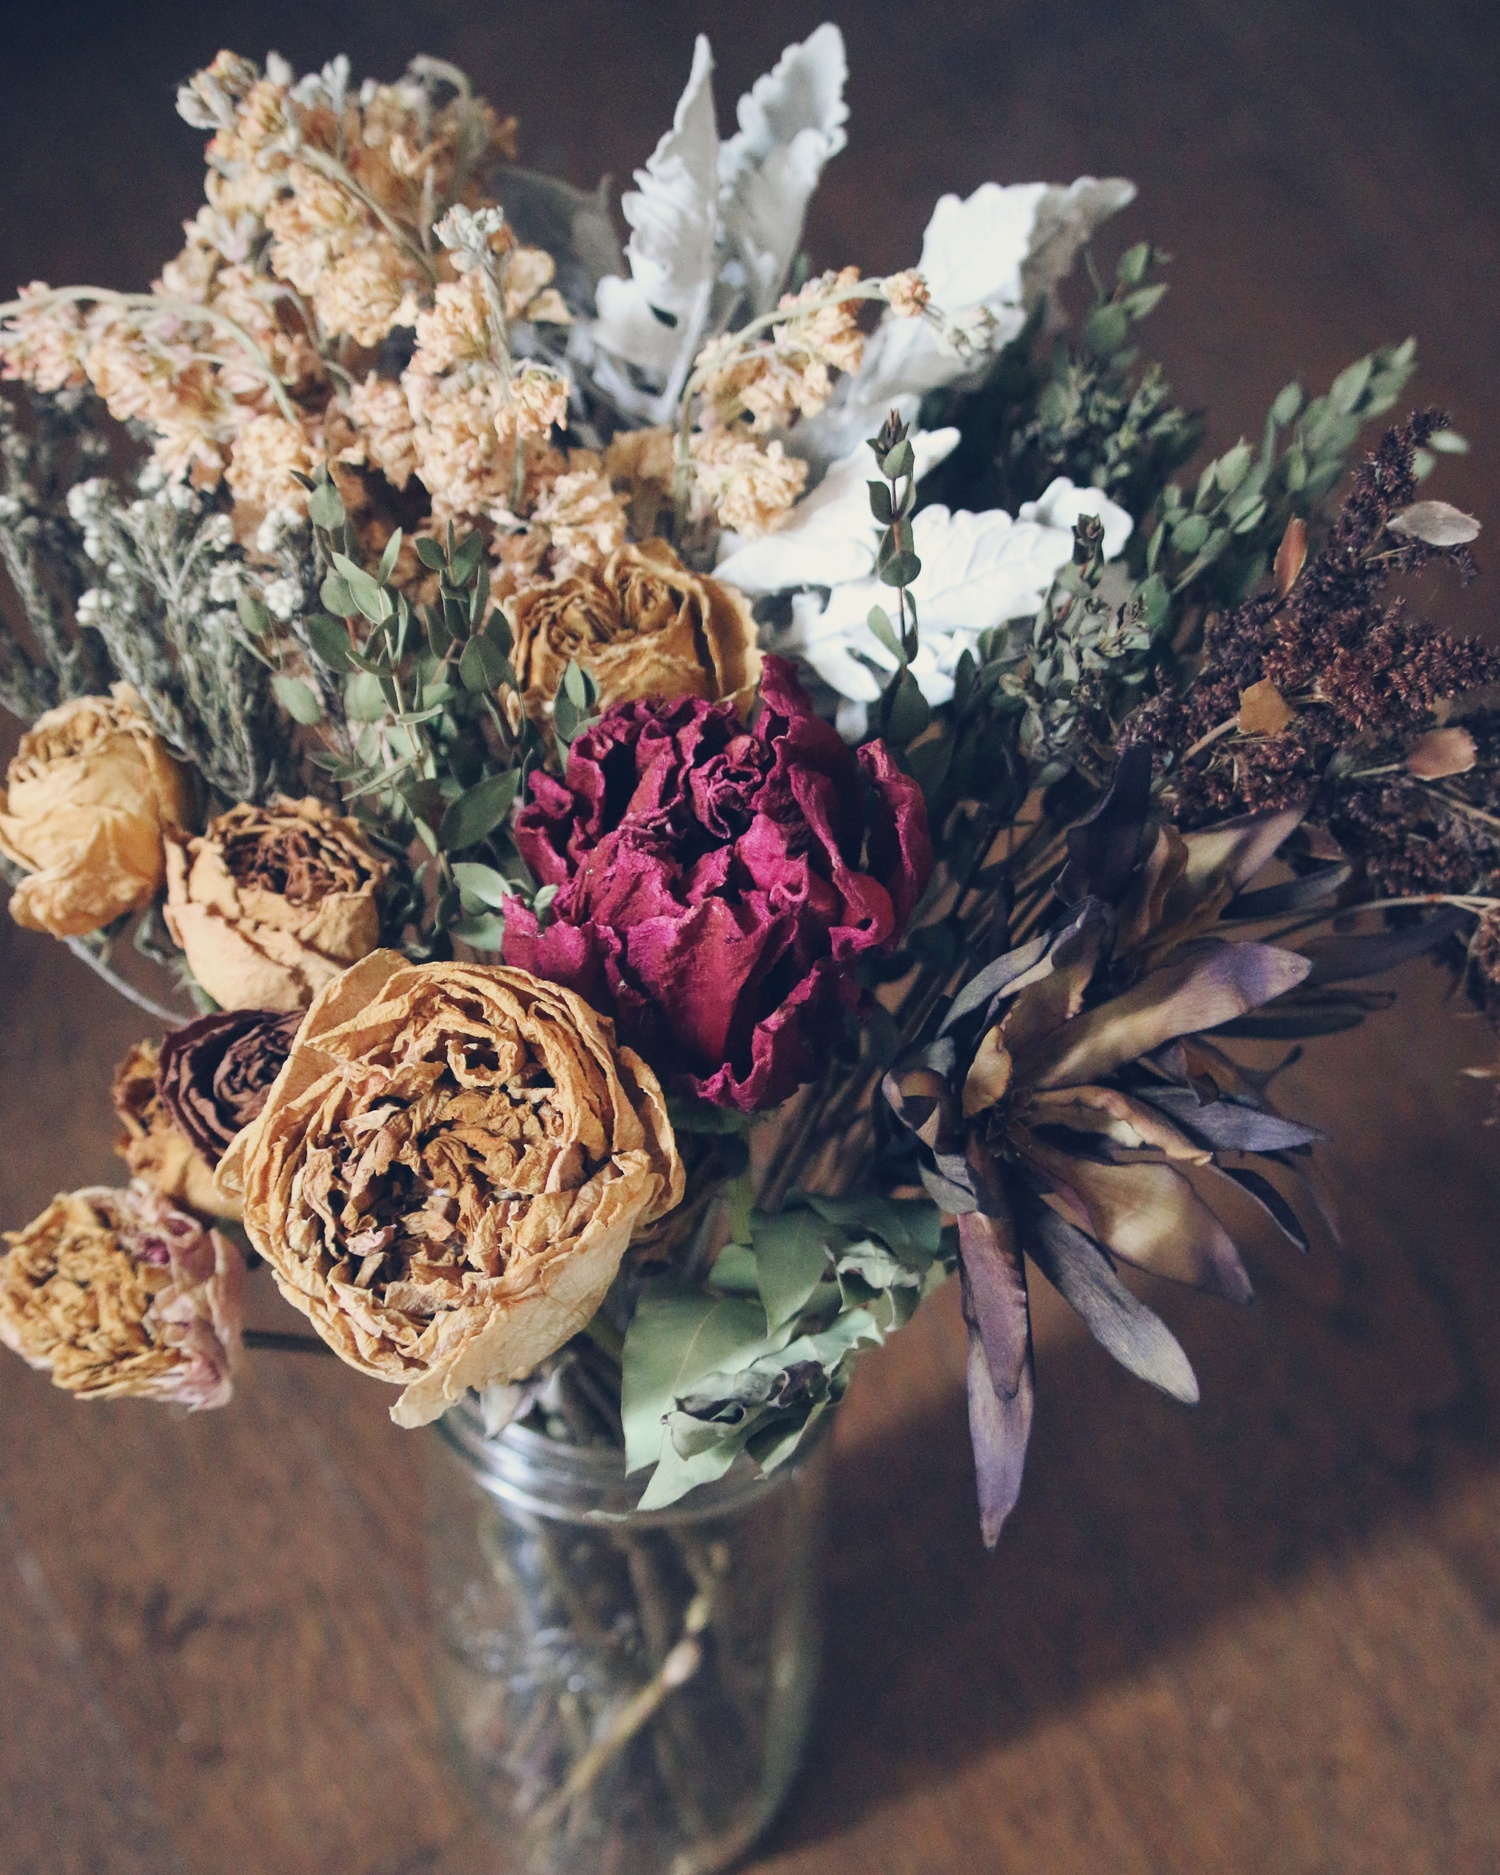 Free Photo Dried Flowers Potpourri Flowers Floral Free